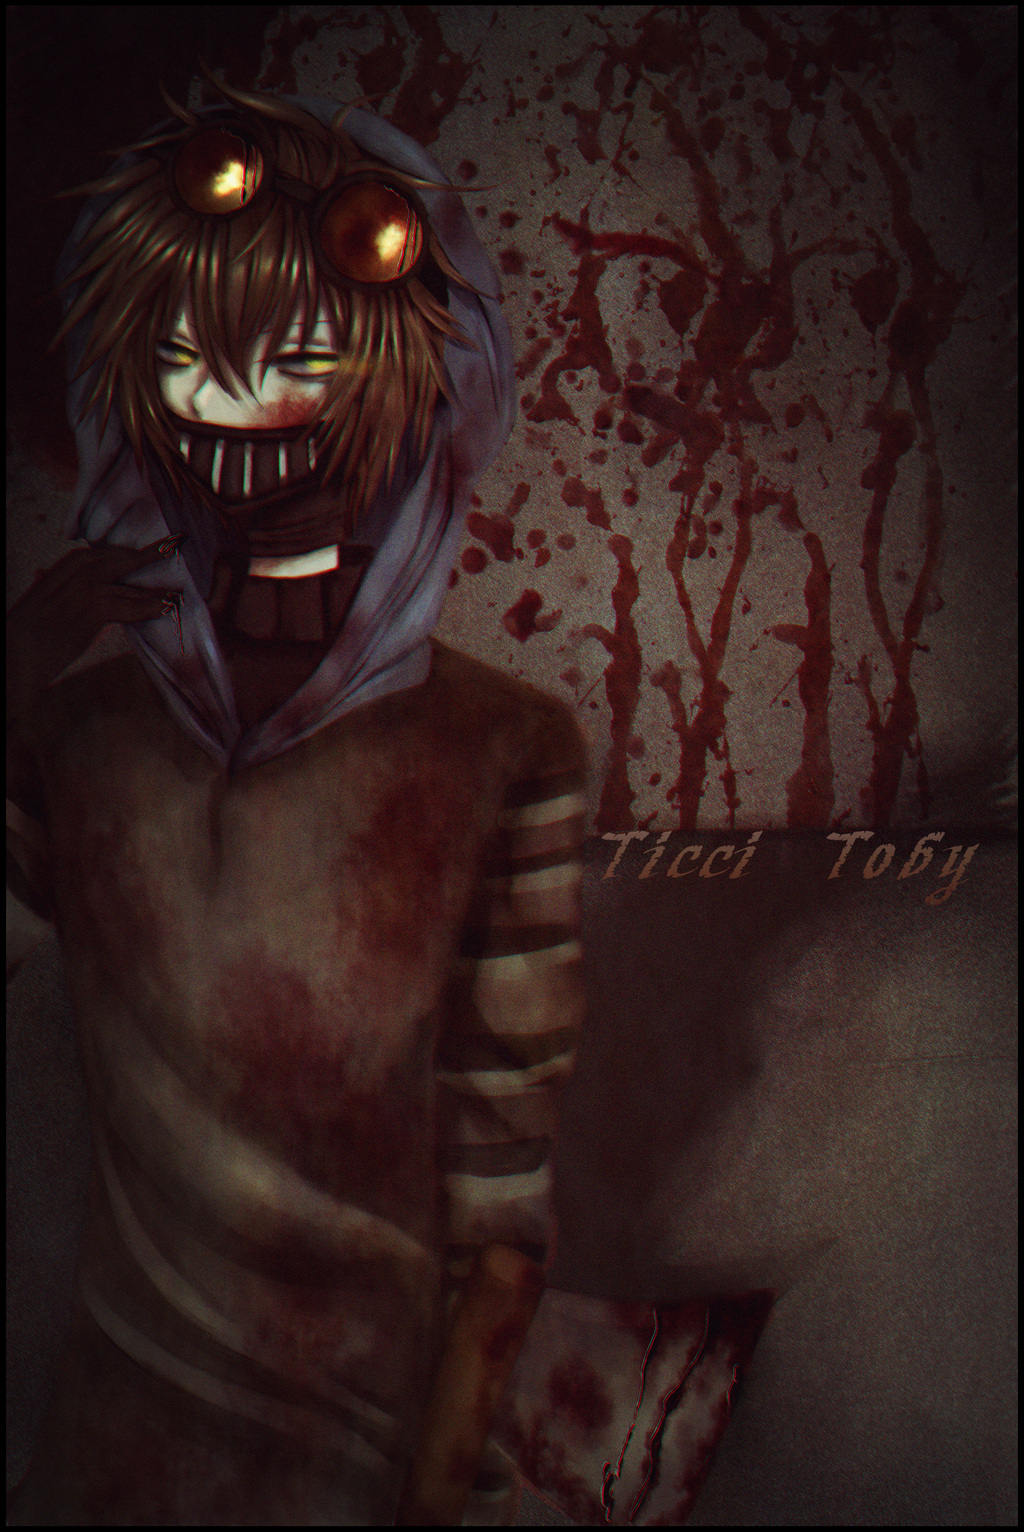 Ticci Toby. by TenshiAya on DeviantArt